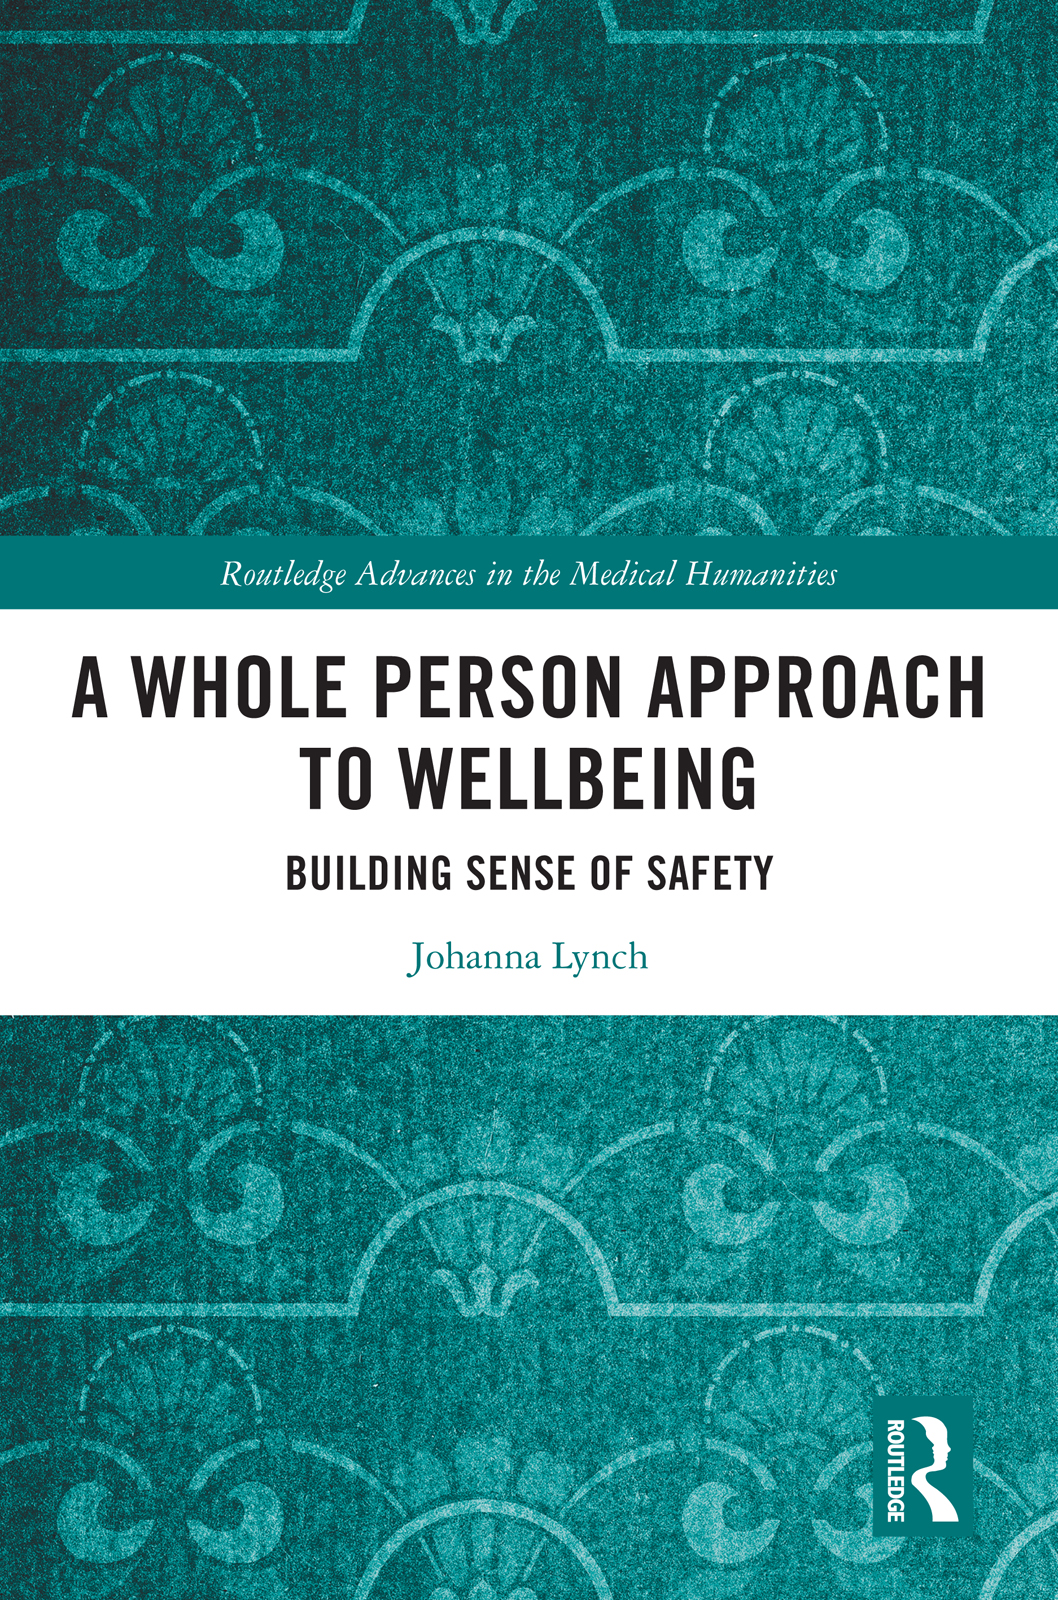 A Whole Person Approach to Wellbeing